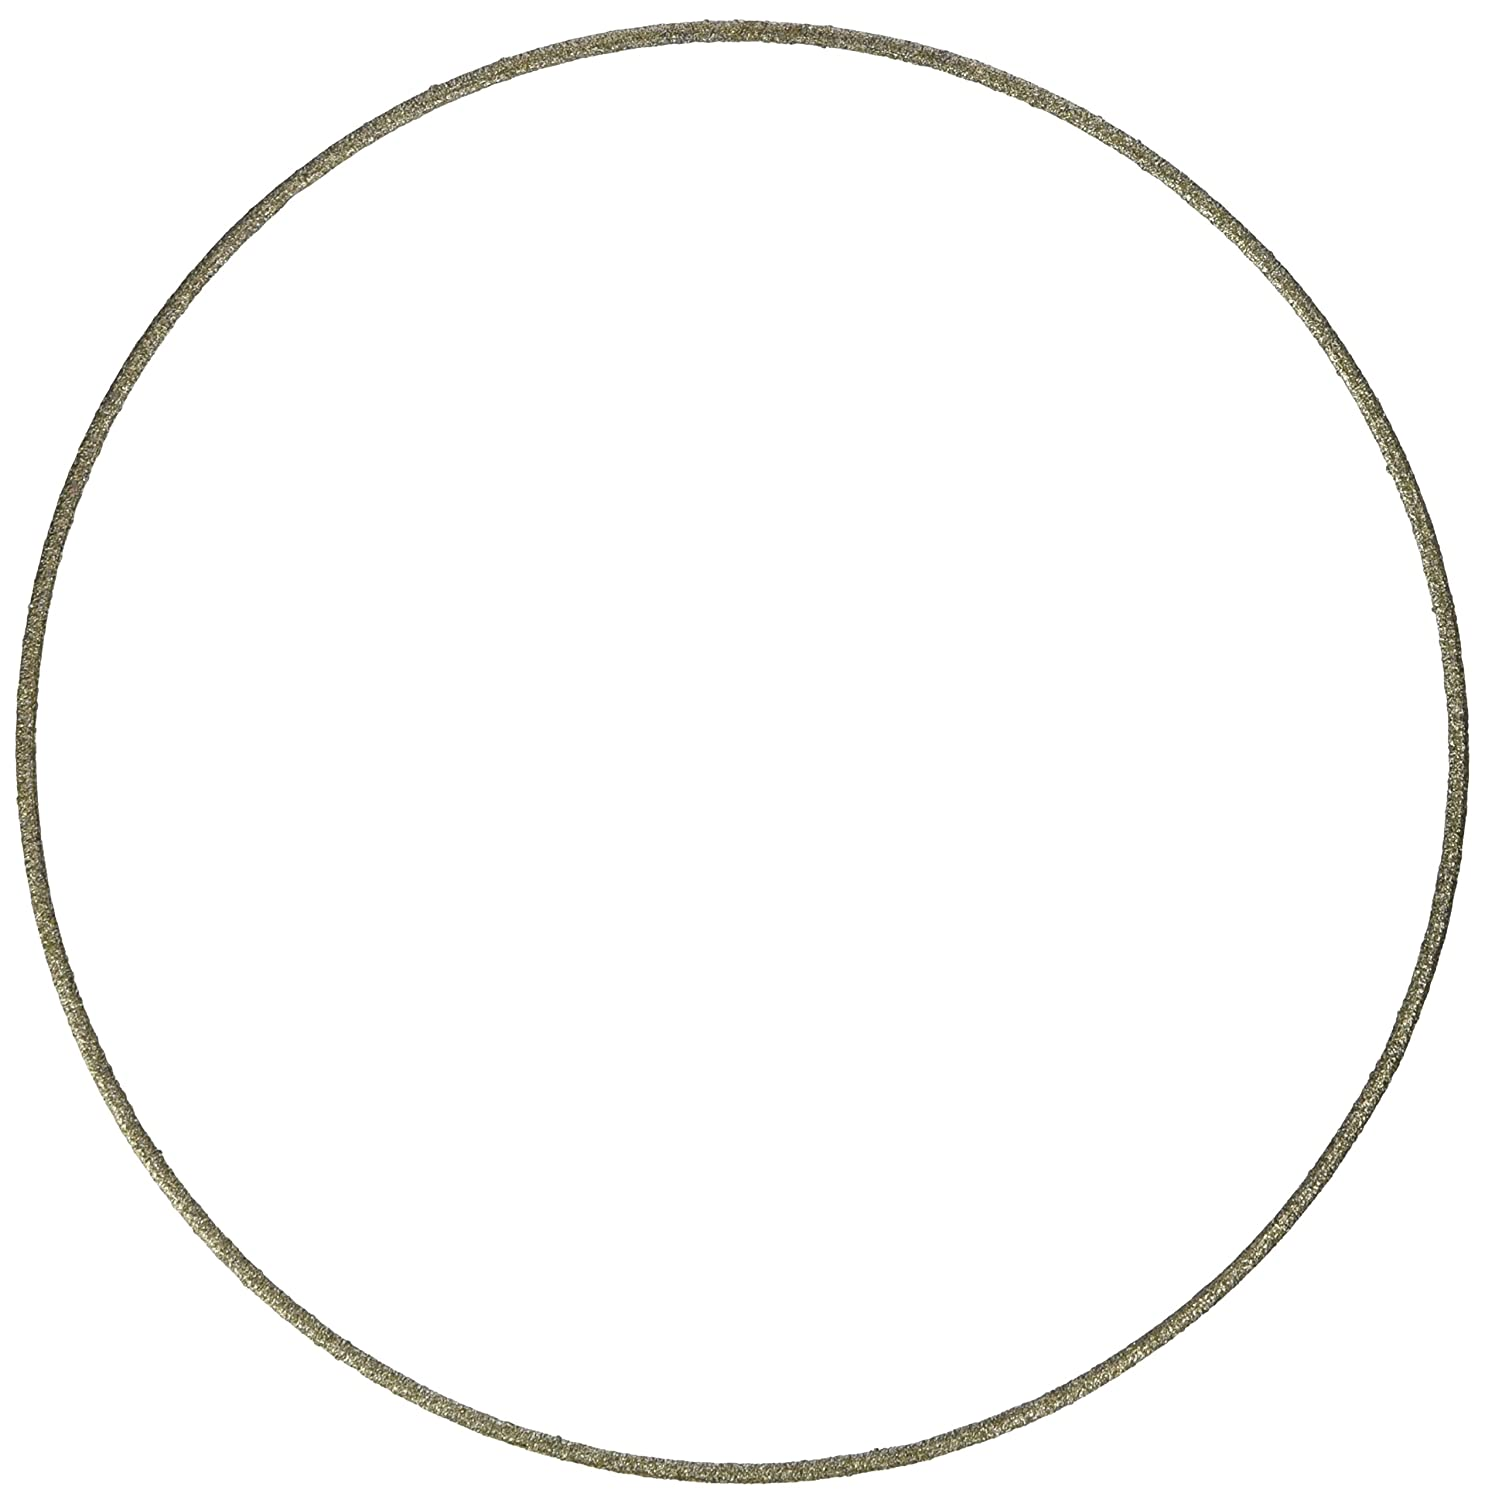 Kent 5-3/4 Replacement Taurus II.2 and 3.0 Diamond Coated Ring Saw Blade GRIT 80 Made For Kent Supplies GLS-339